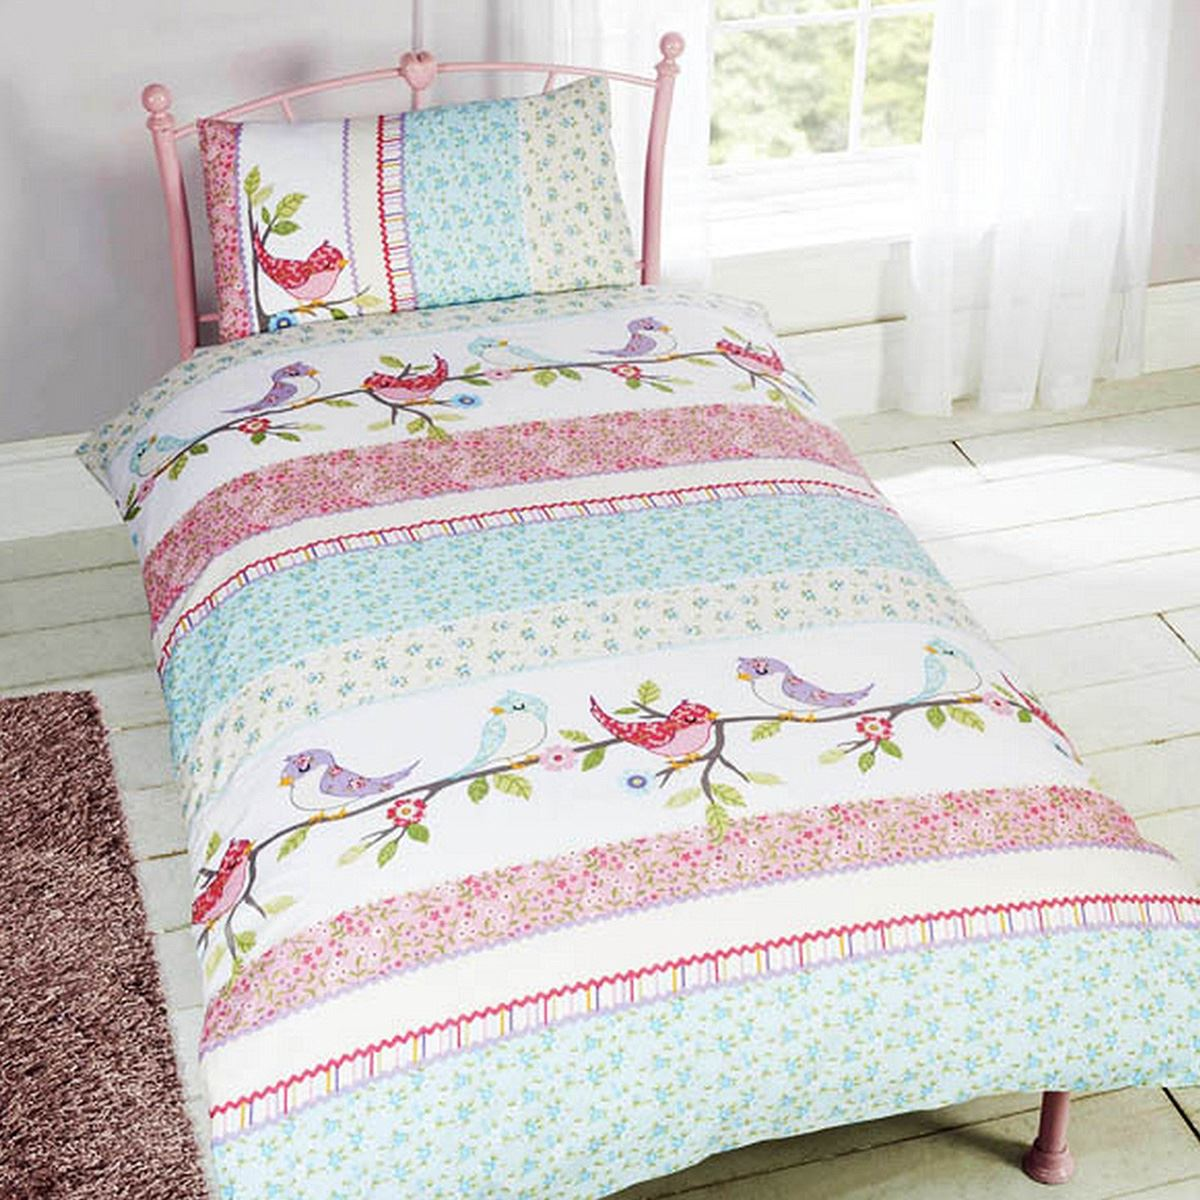 indian bedroom duvet comforters covers decor the sale set accessories flower cover home en for